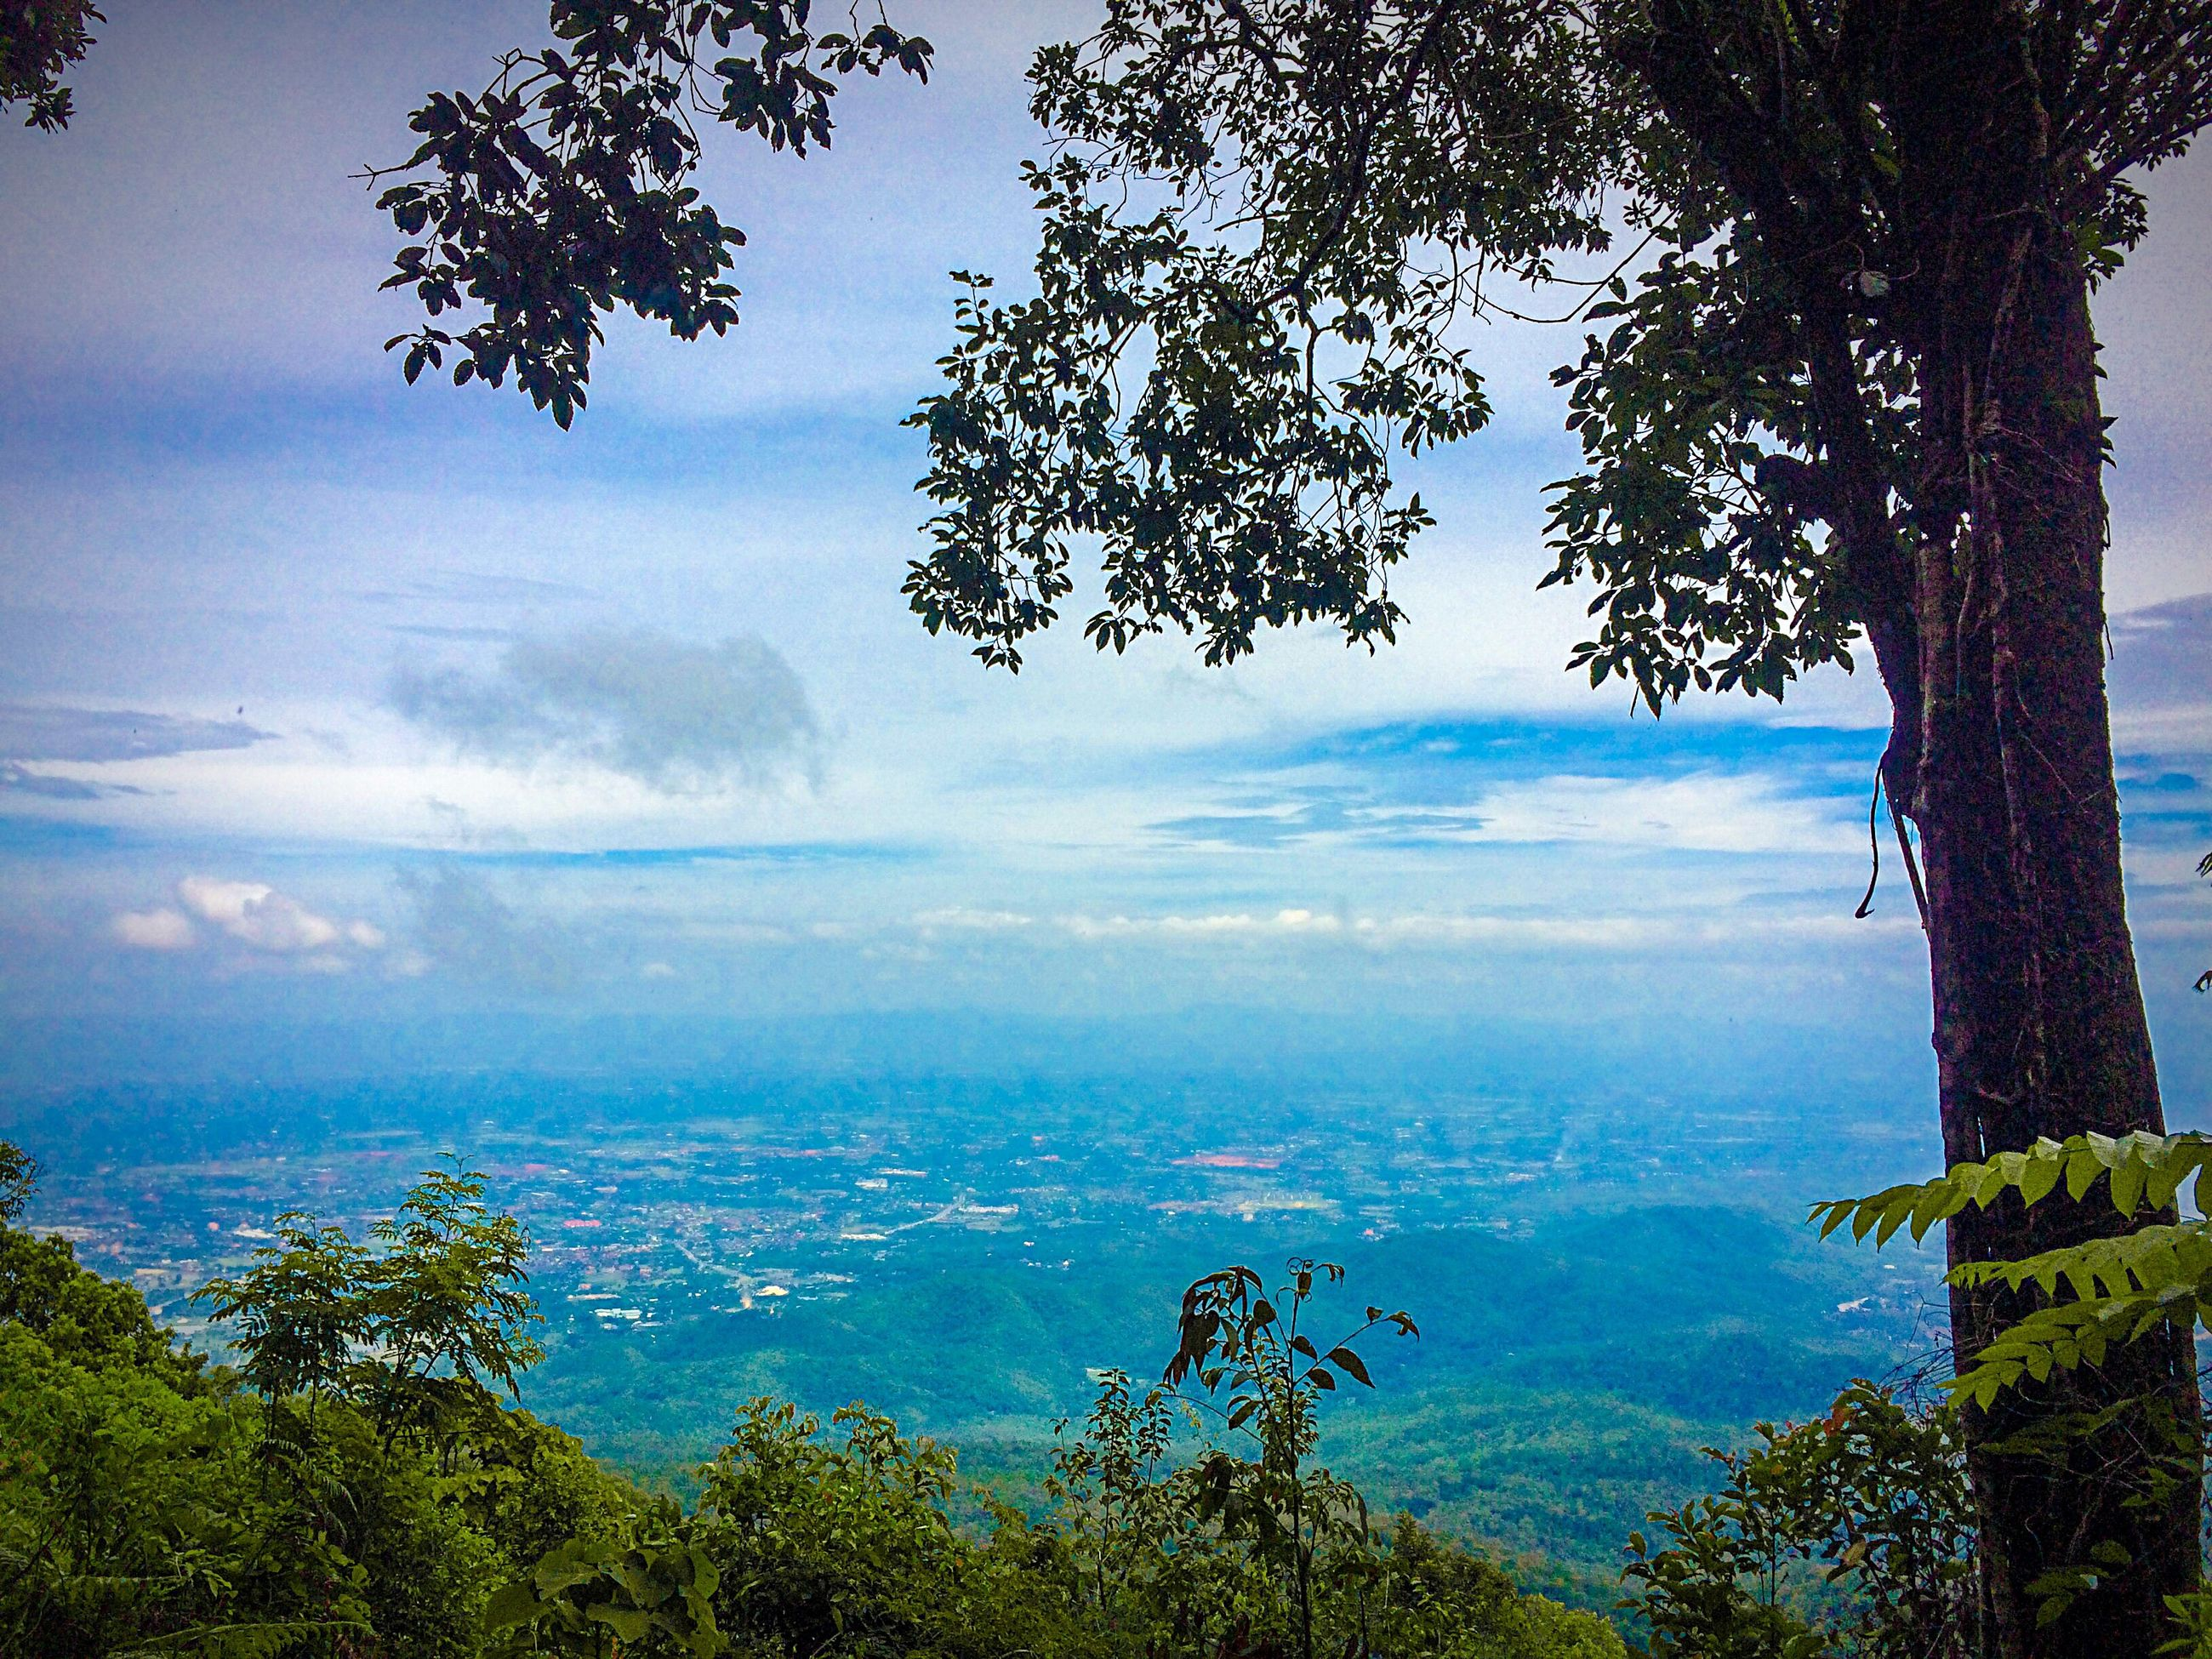 tree, scenics, sky, tranquil scene, tranquility, beauty in nature, mountain, cloud - sky, nature, landscape, weather, idyllic, cloud, mountain range, cloudy, no people, growth, day, outdoors, blue, non-urban scene, travel destinations, majestic, green color, hill, remote, cityscape, tourism, non urban scene